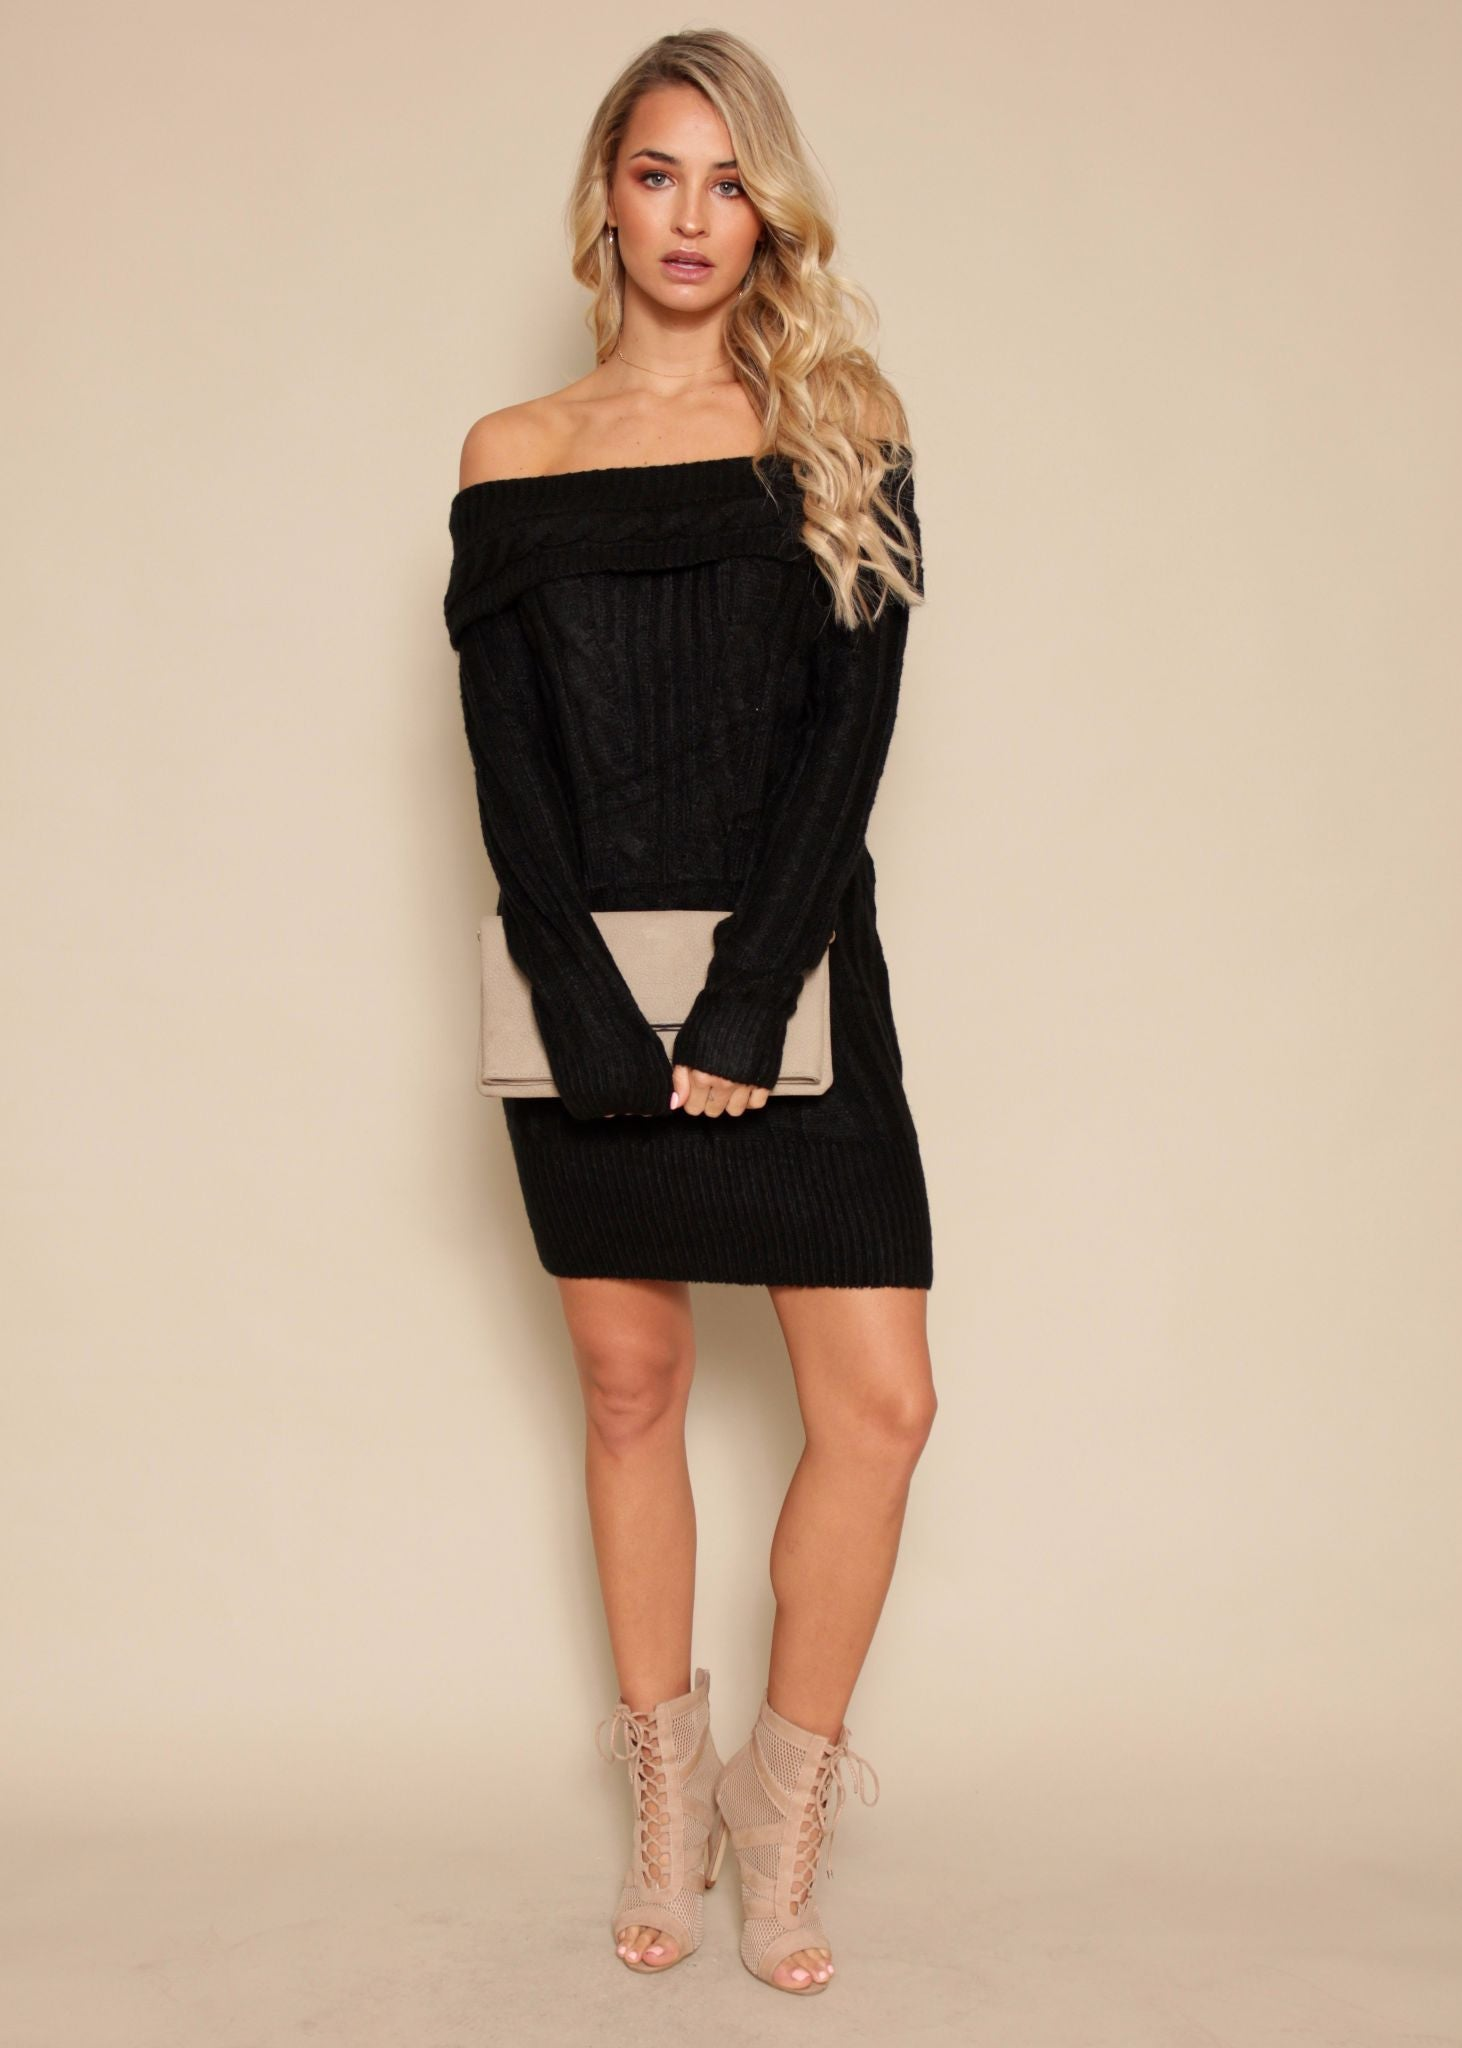 This Sweet Love Knit Dress - Black